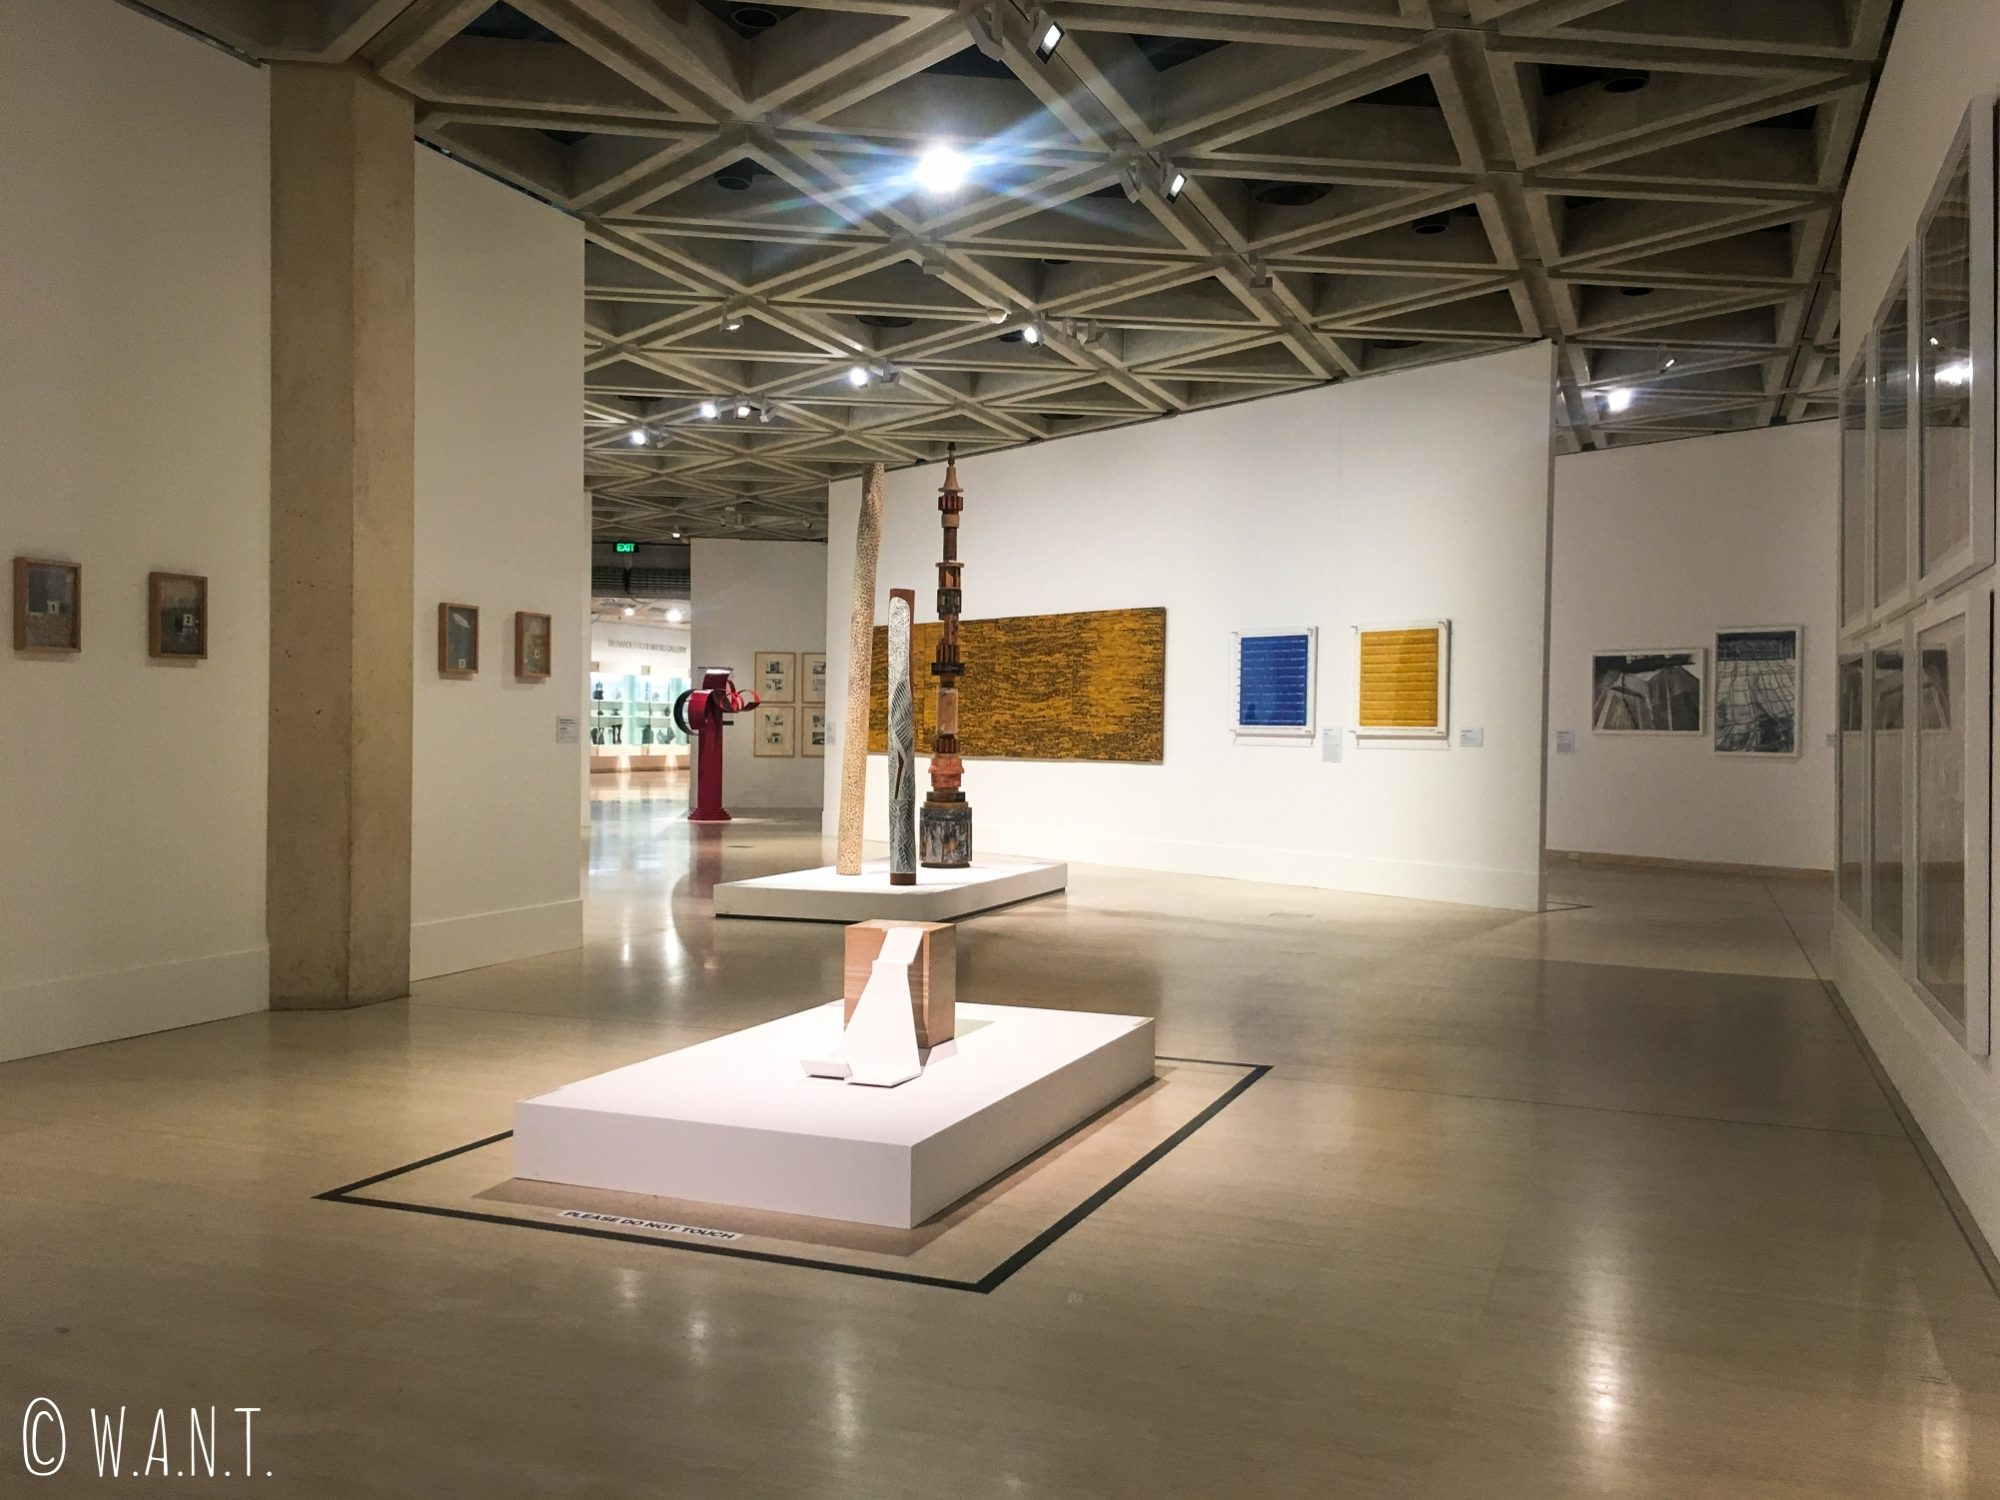 Aile contemporaine du Art Gallery Museum de Perth